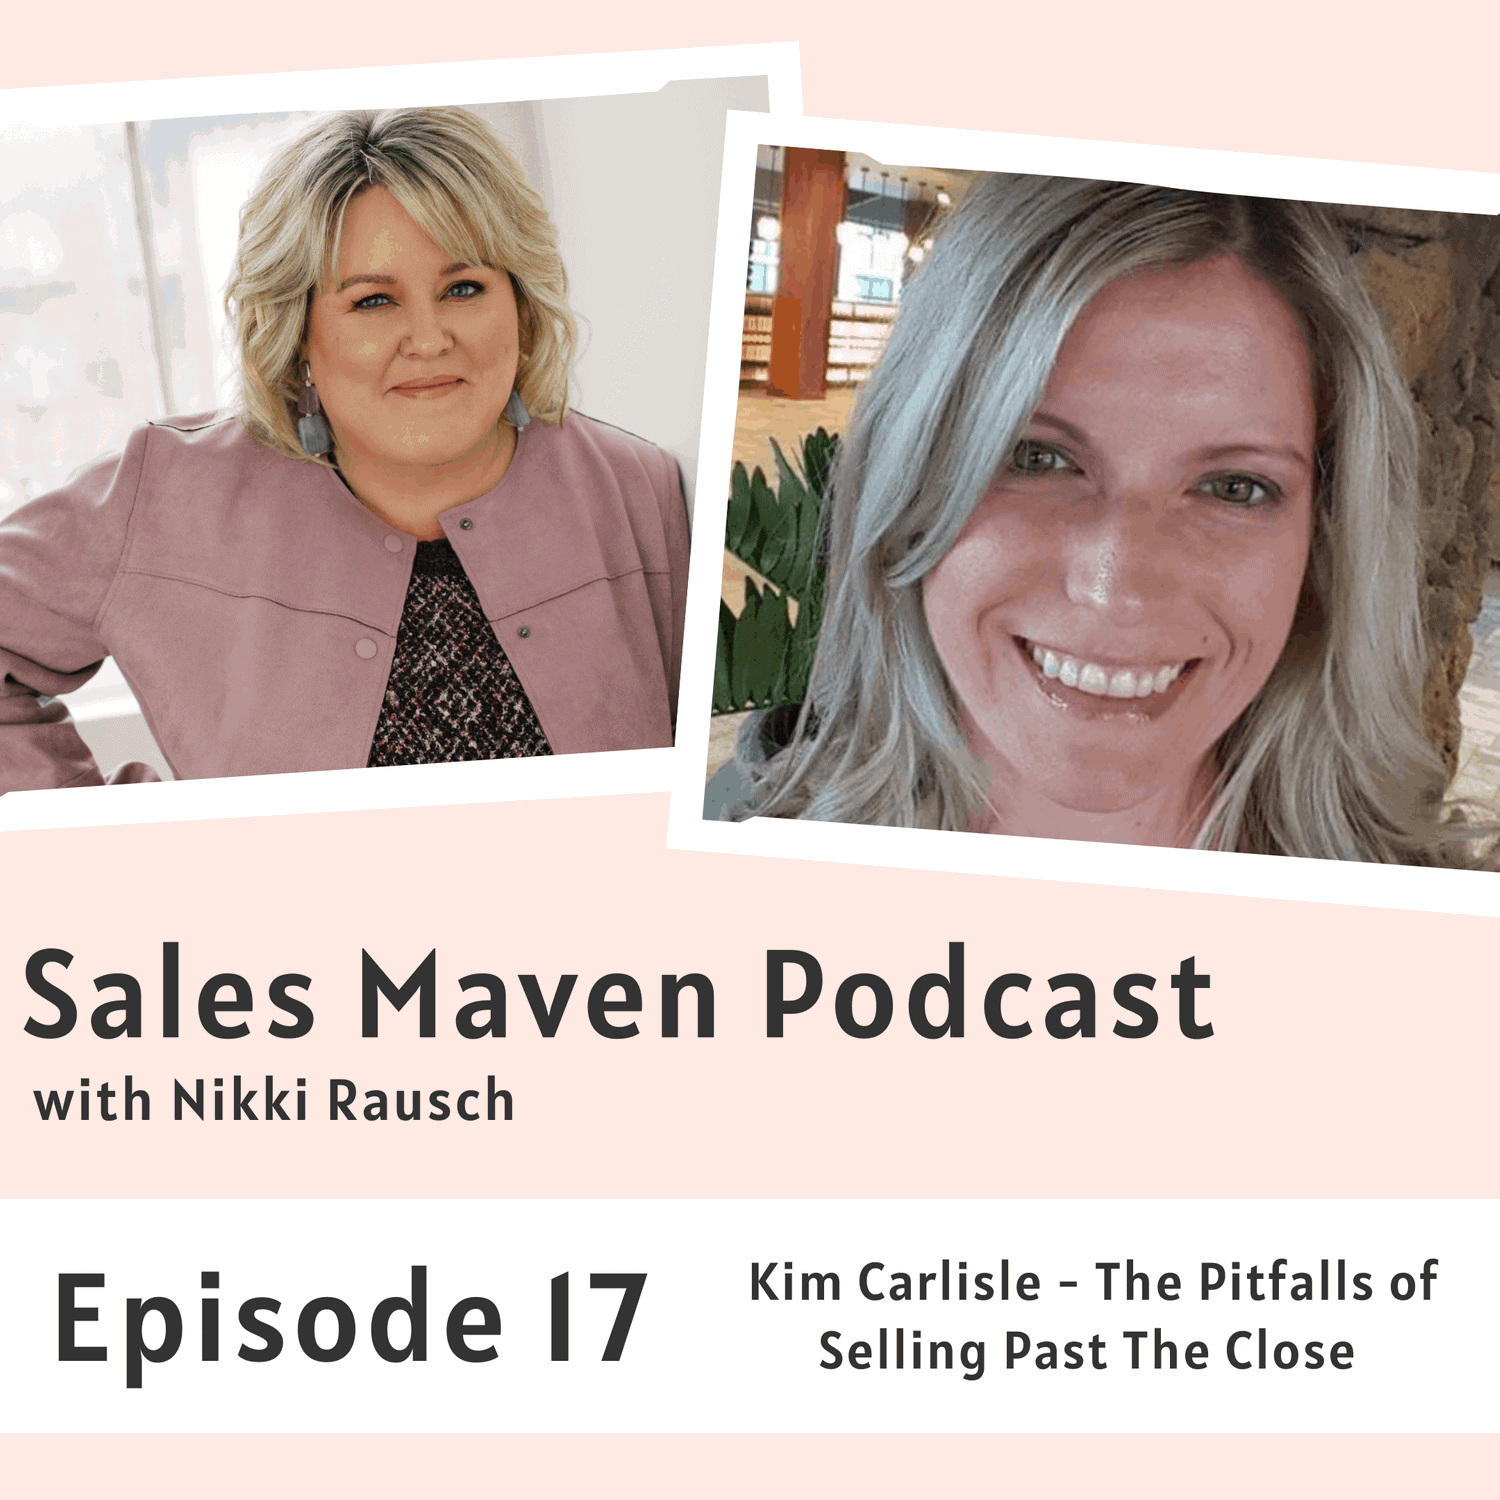 The pitfalls of selling past the close with Kim Carlisle - Sales Maven Podcast